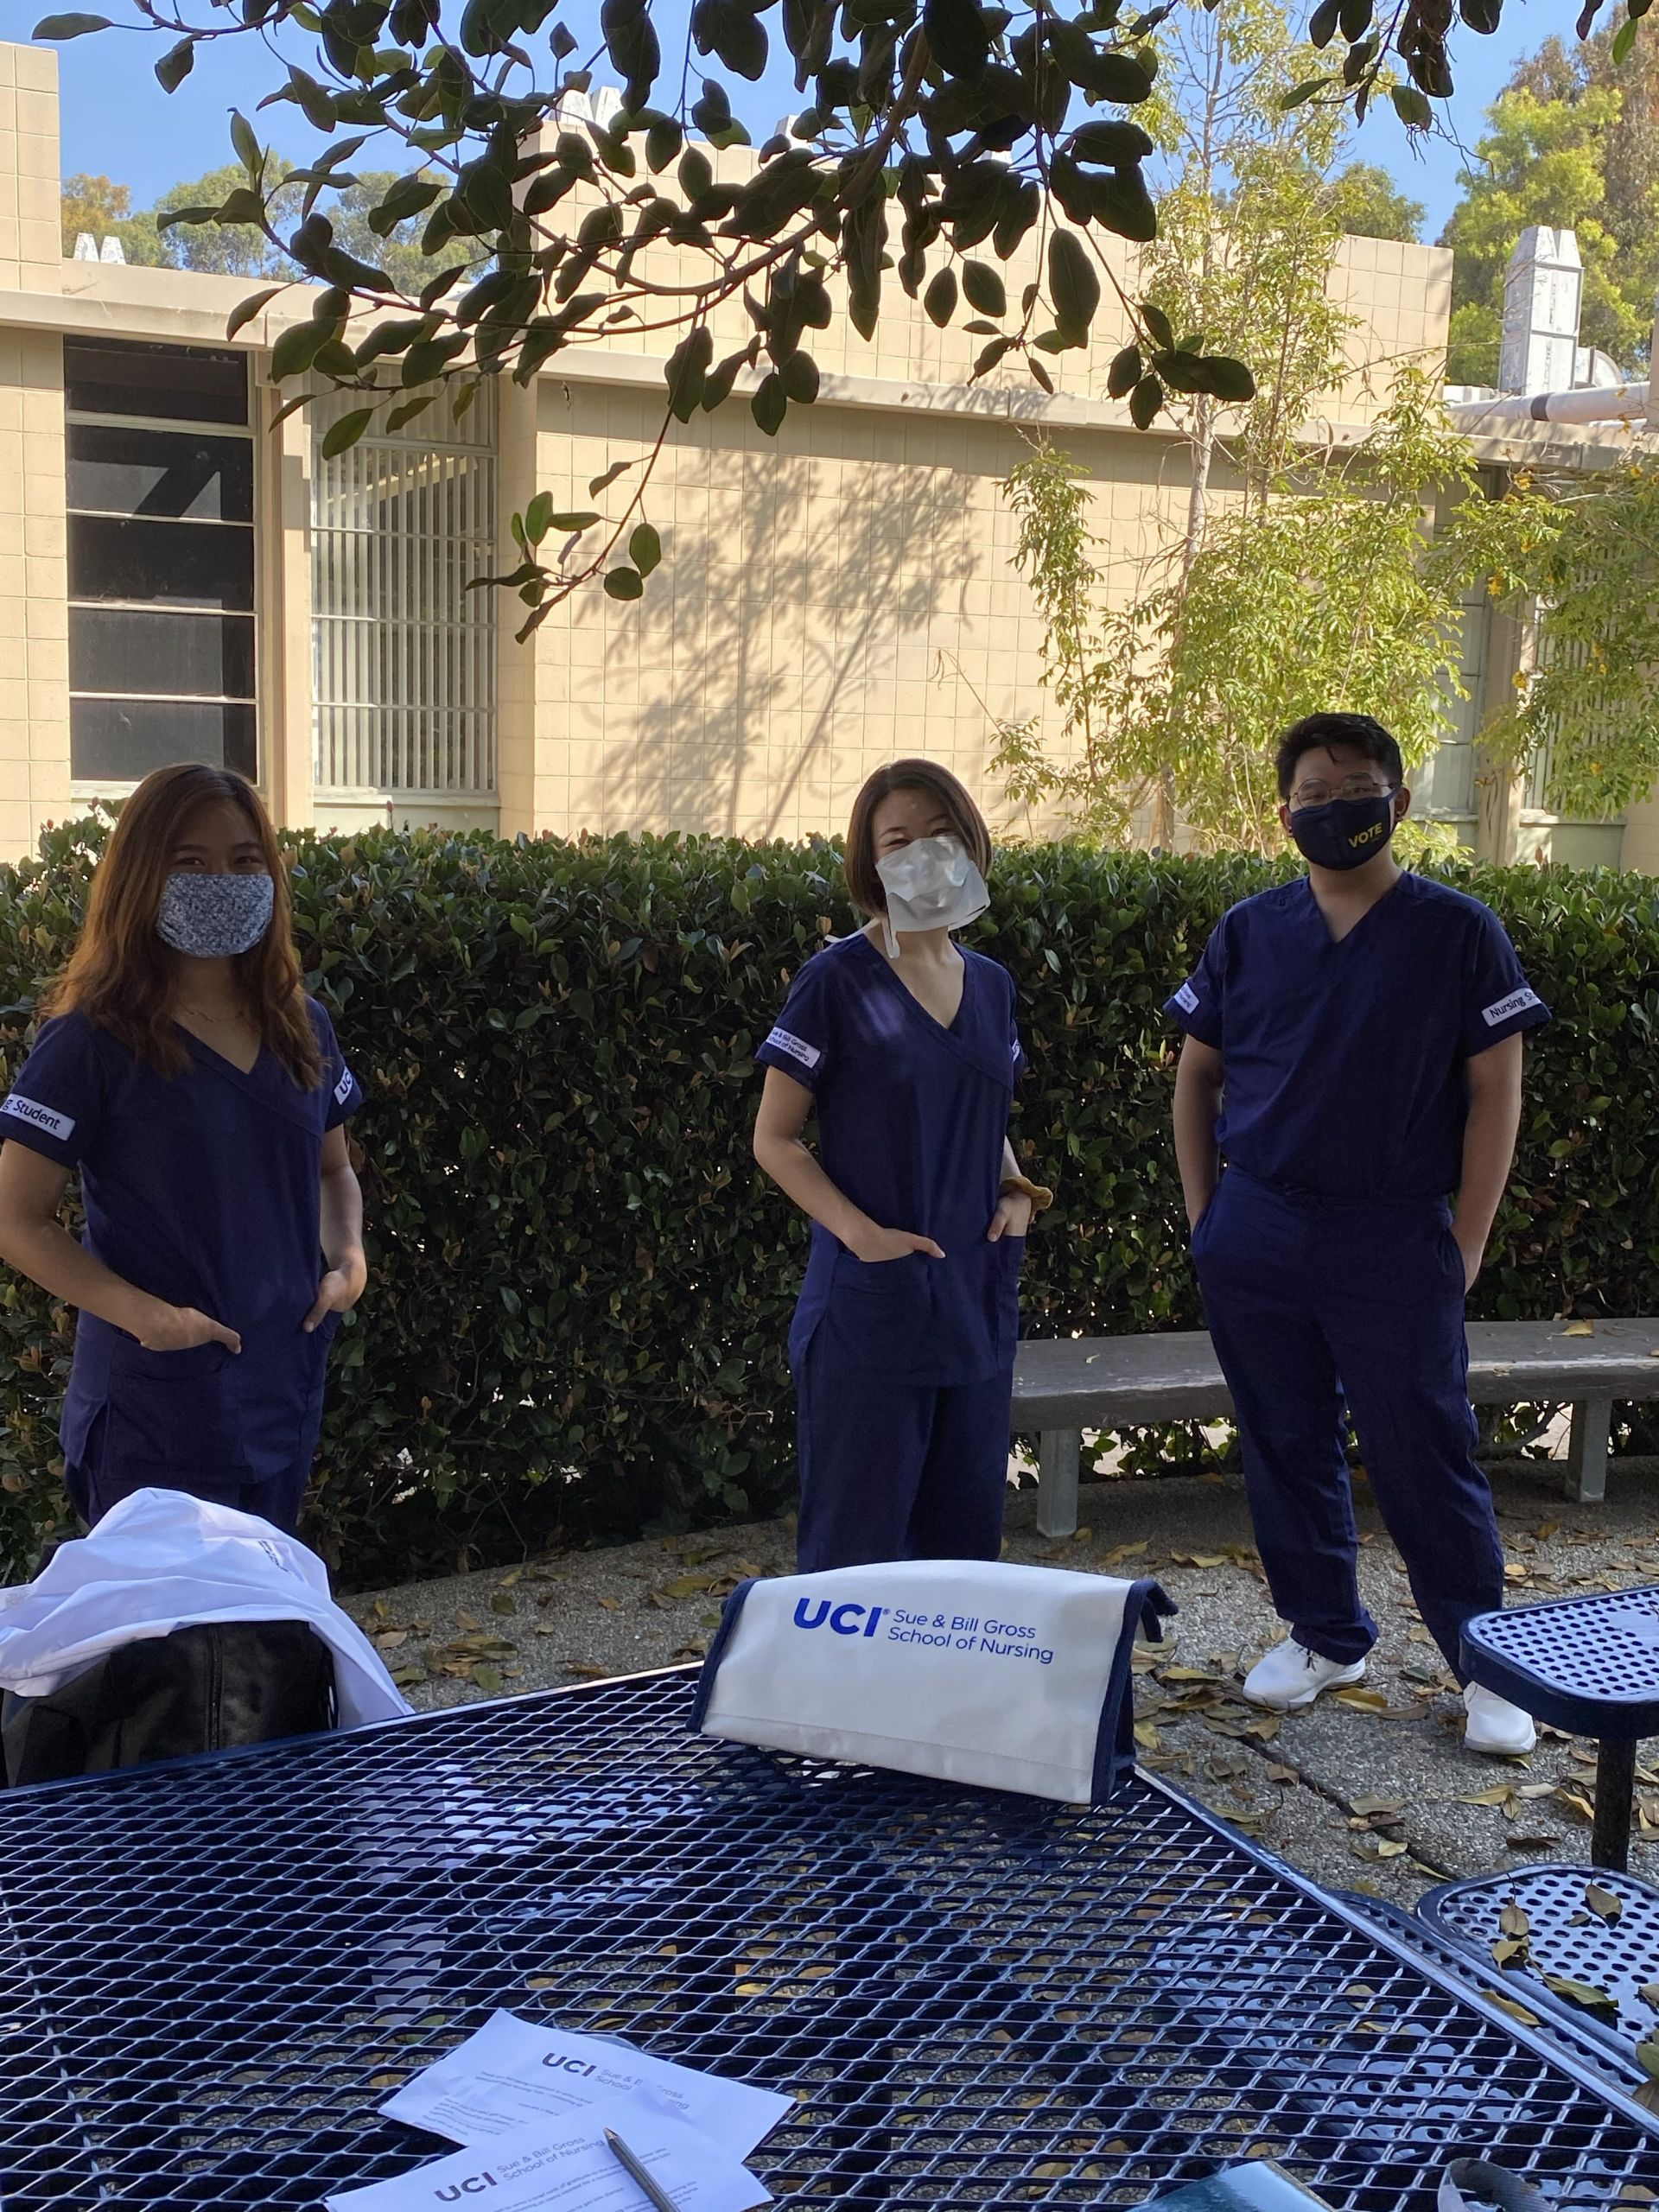 UCI School of Nursing pick up their skills totes, which were donated by the community on Giving Day.